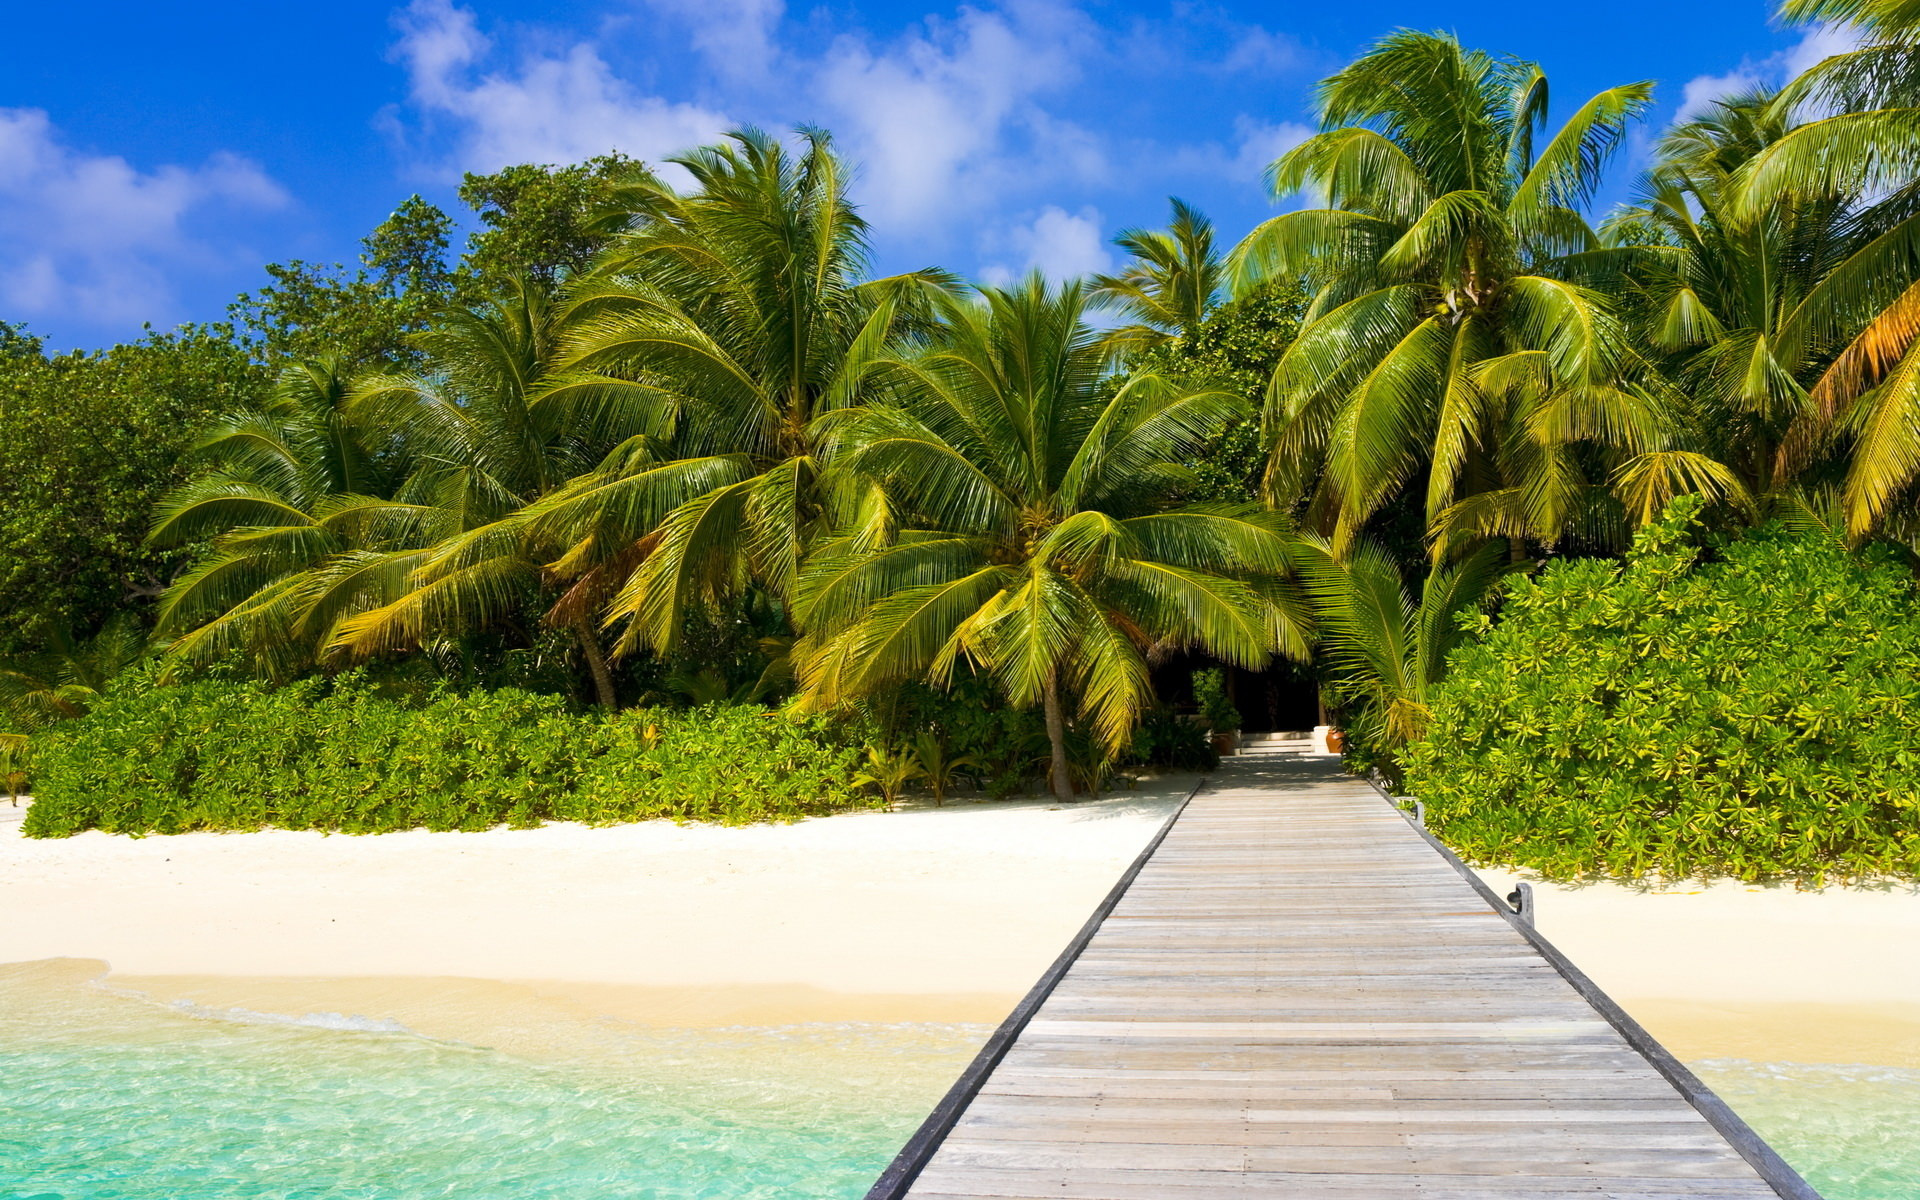 tropical beach backgrounds wallpapers images #143